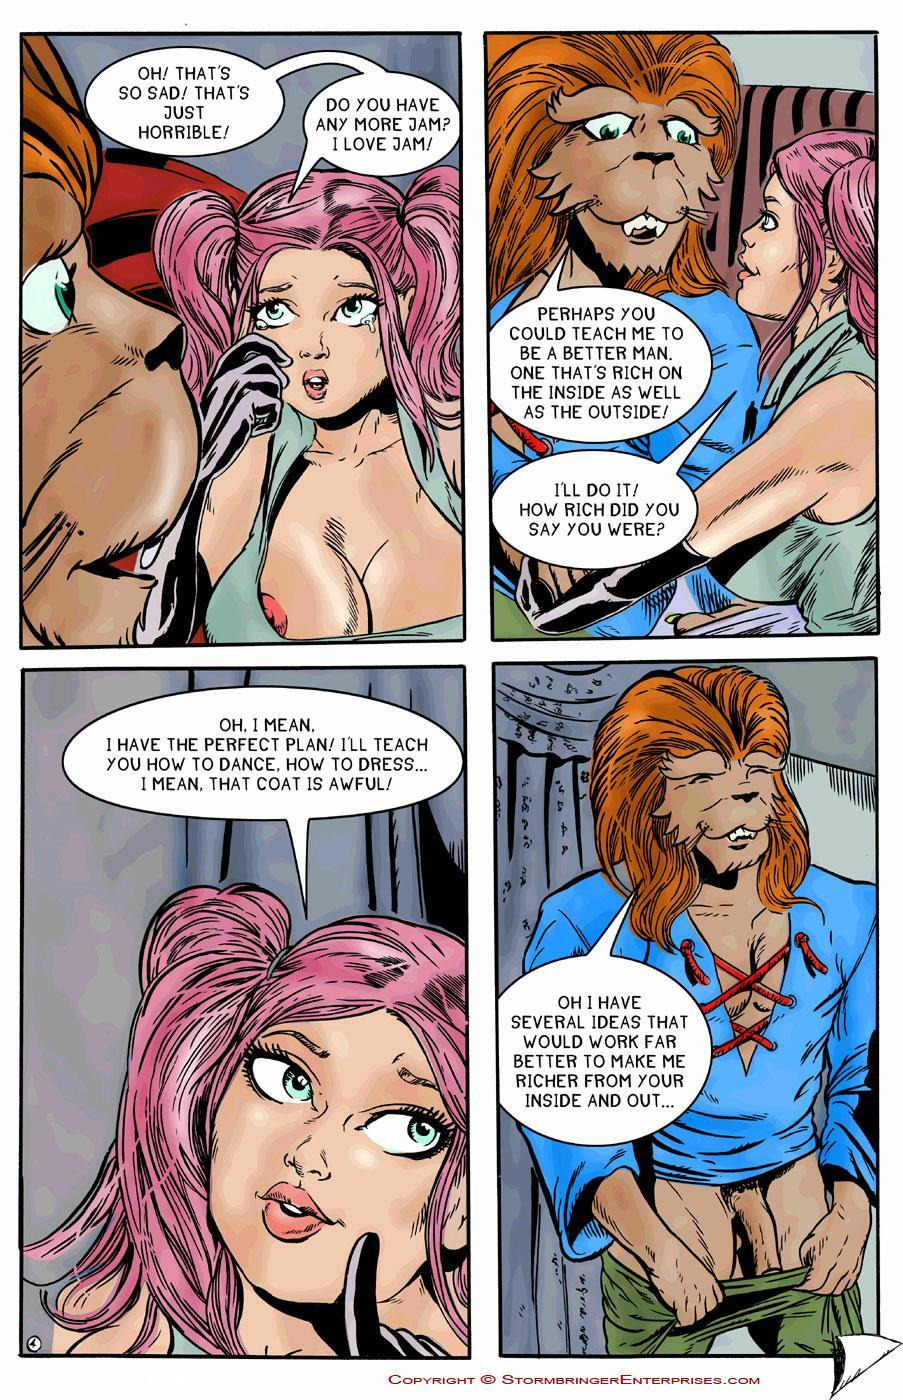 Erotic Adventures of Candice 01-187 free sex comic